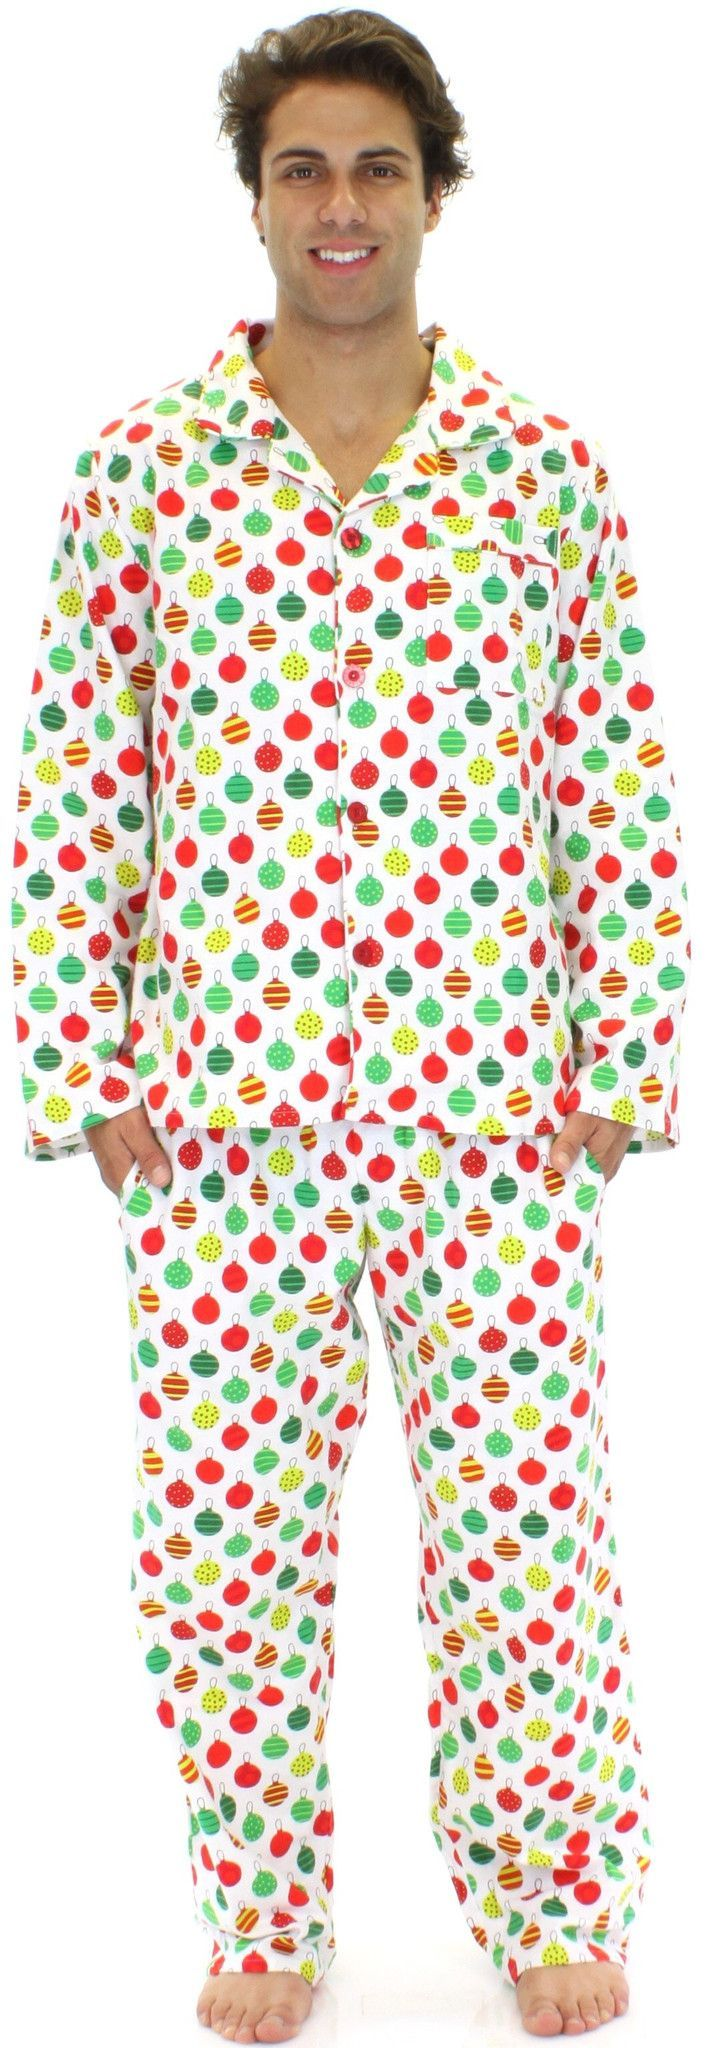 The pajamas are made of 100% flannel cotton. Perfect to keep you warm all holiday long! The pants include 2 side pockets, a functional button fly, and an all-around elastic waistband with a drawstring